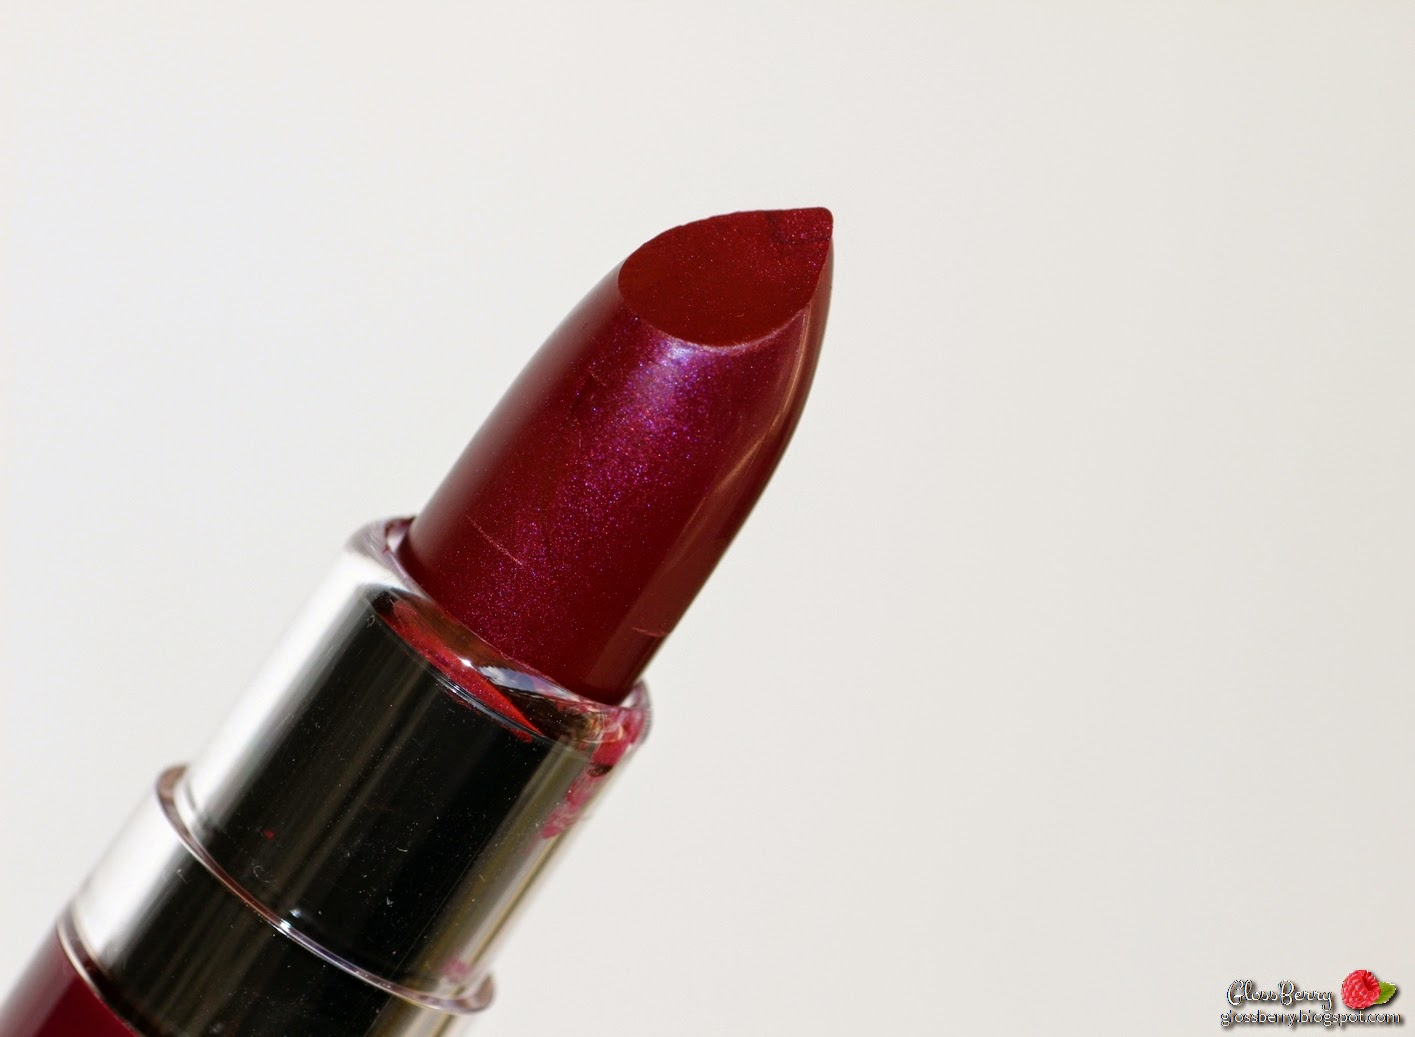 NYX Butter Lipstick - Licorice BLS11 review swatches שפתון ניקס כהה בלוג איפור וטיפוח סקירה גלוסברי